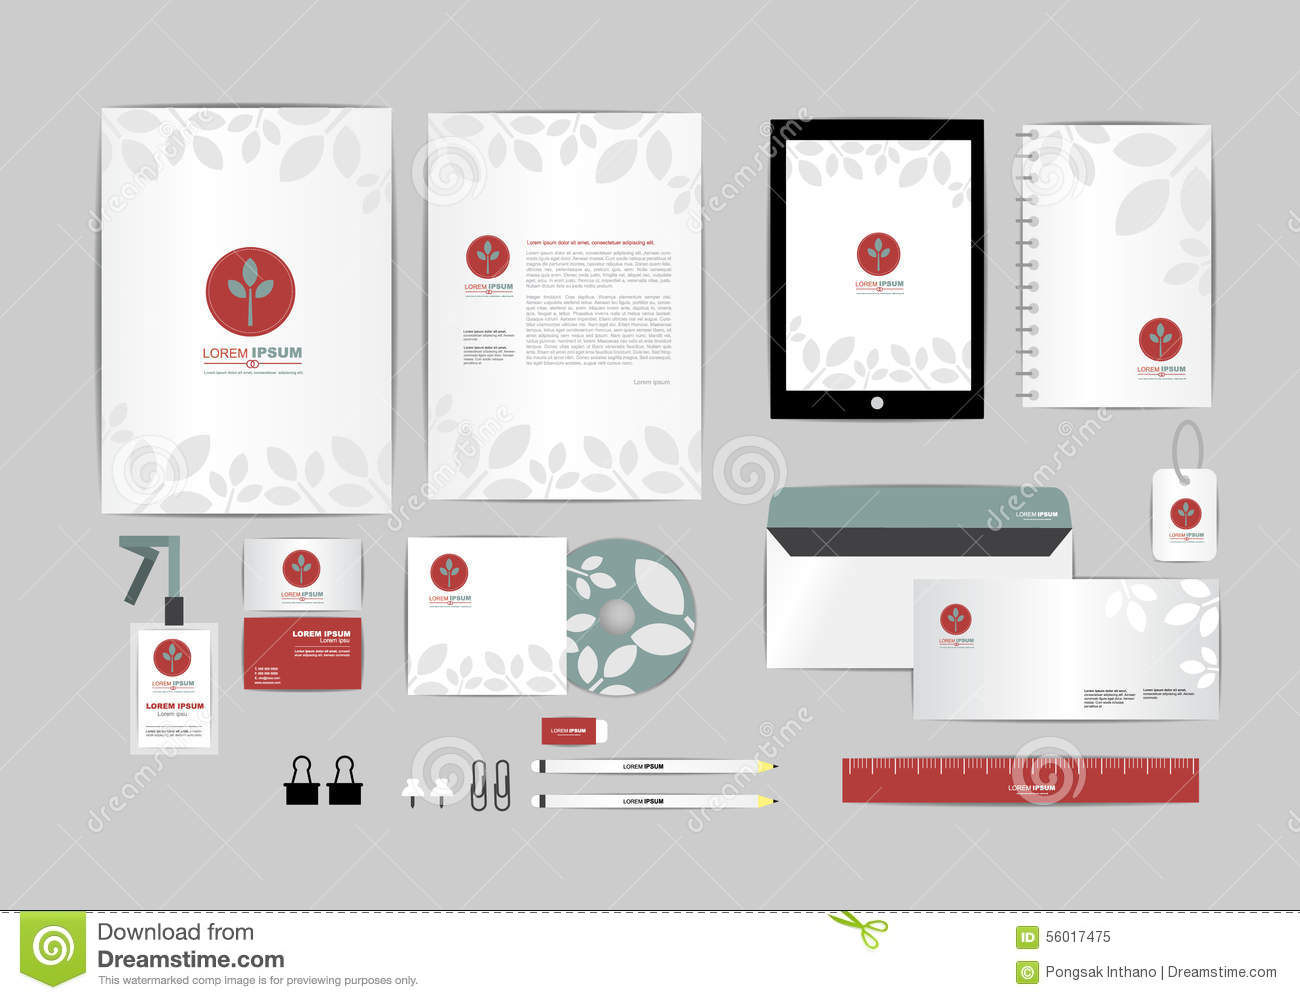 Business Card Cd Uk Image collections - Card Design And Card Template